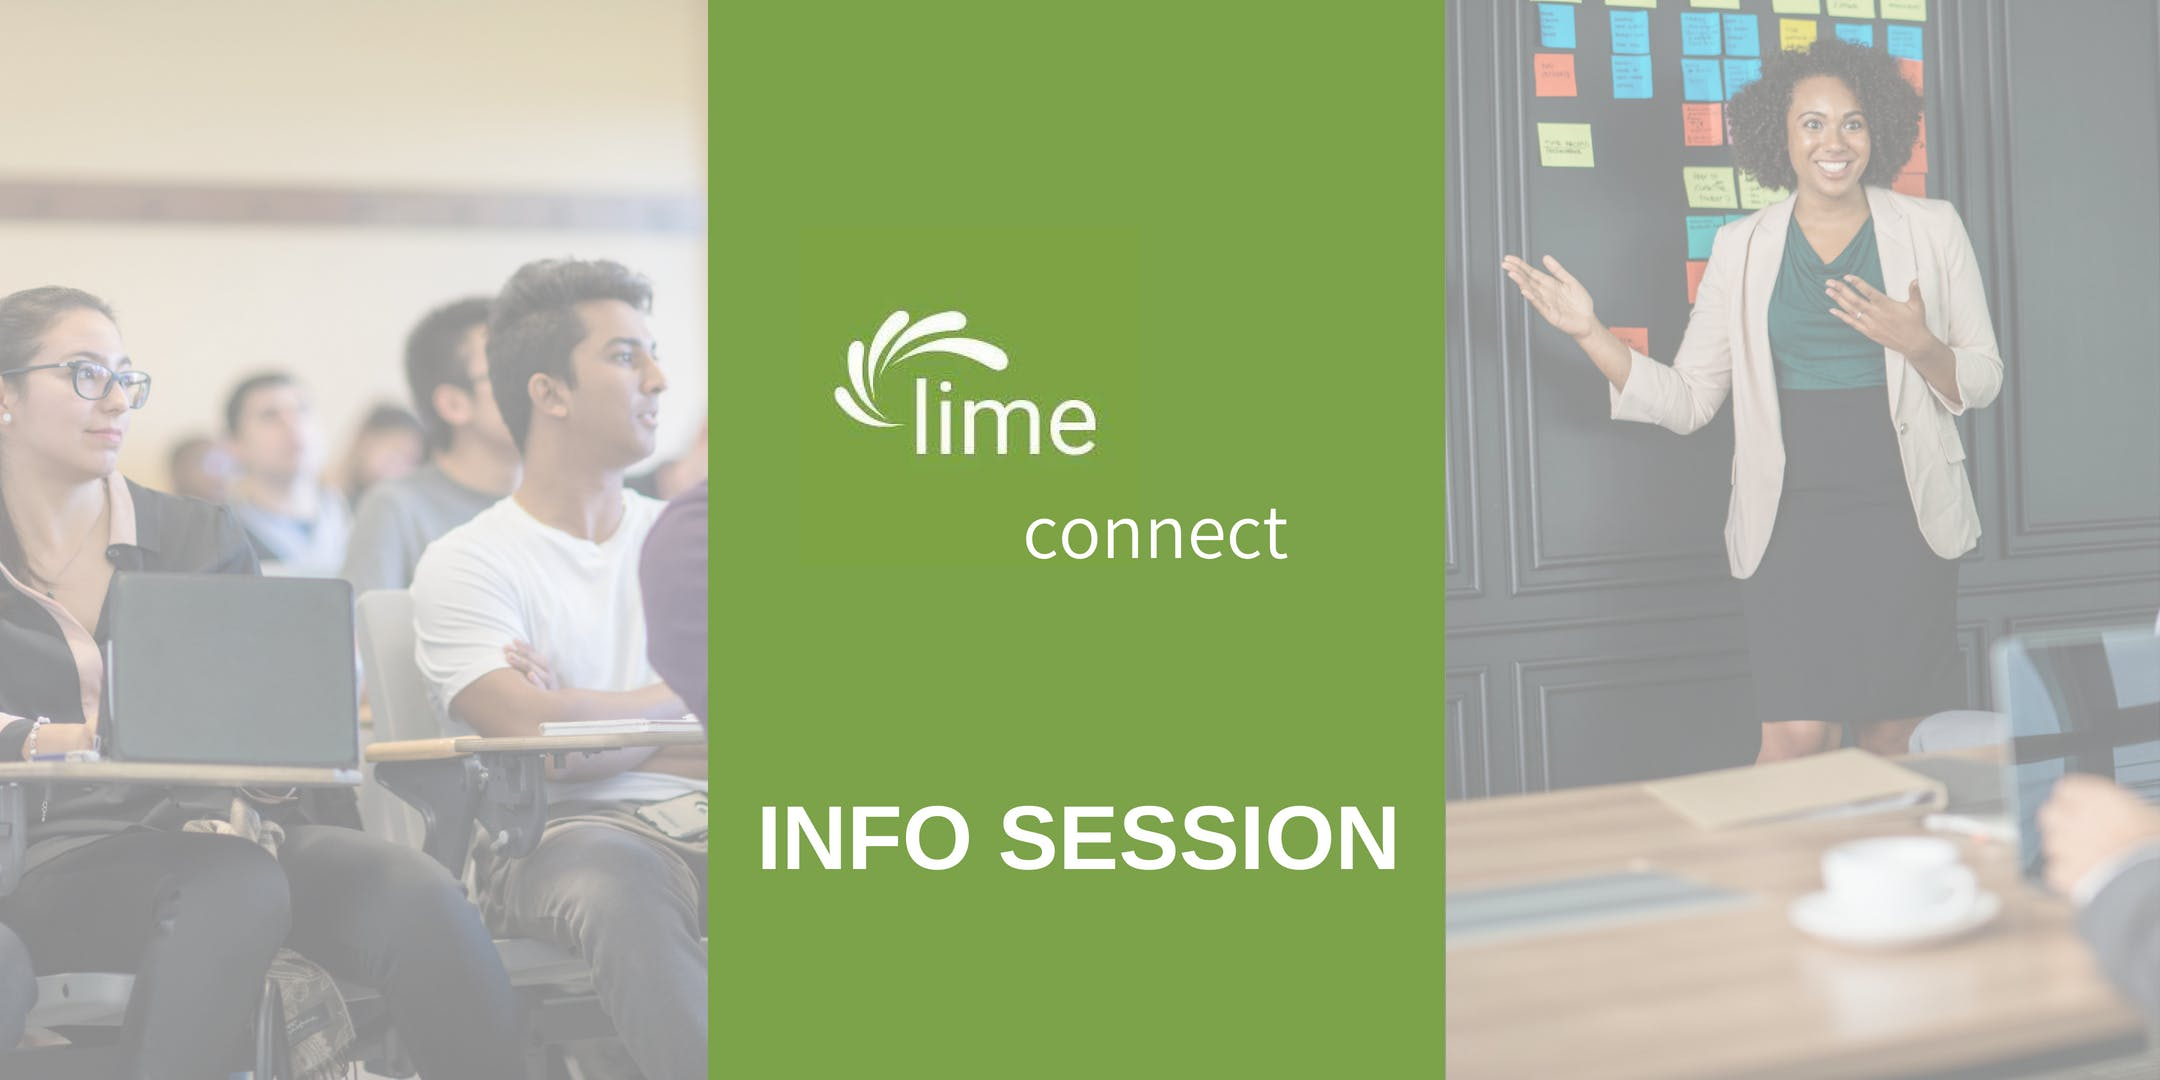 Lime Connect Info Session